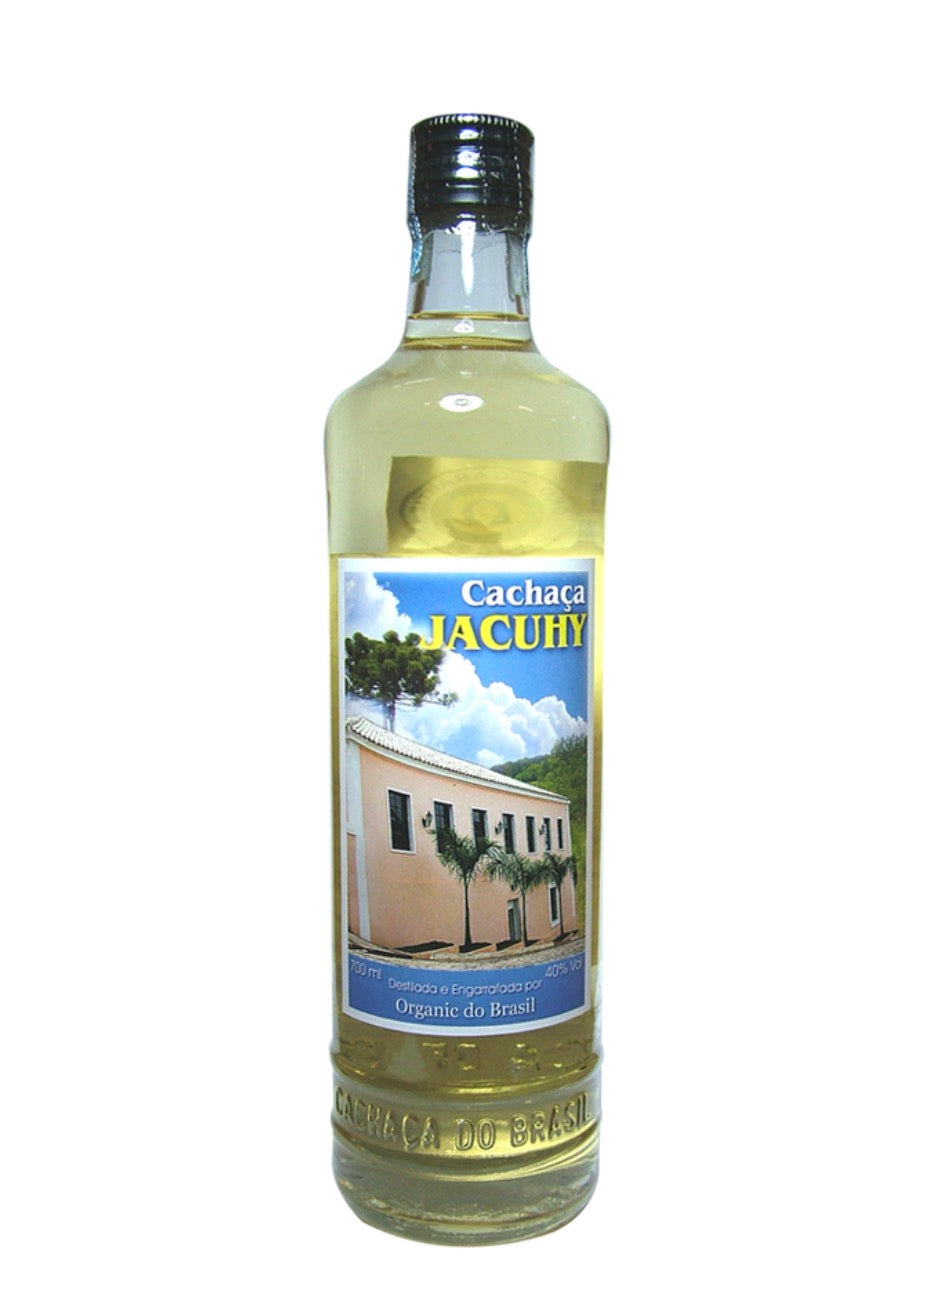 Cachaca Jacuhy